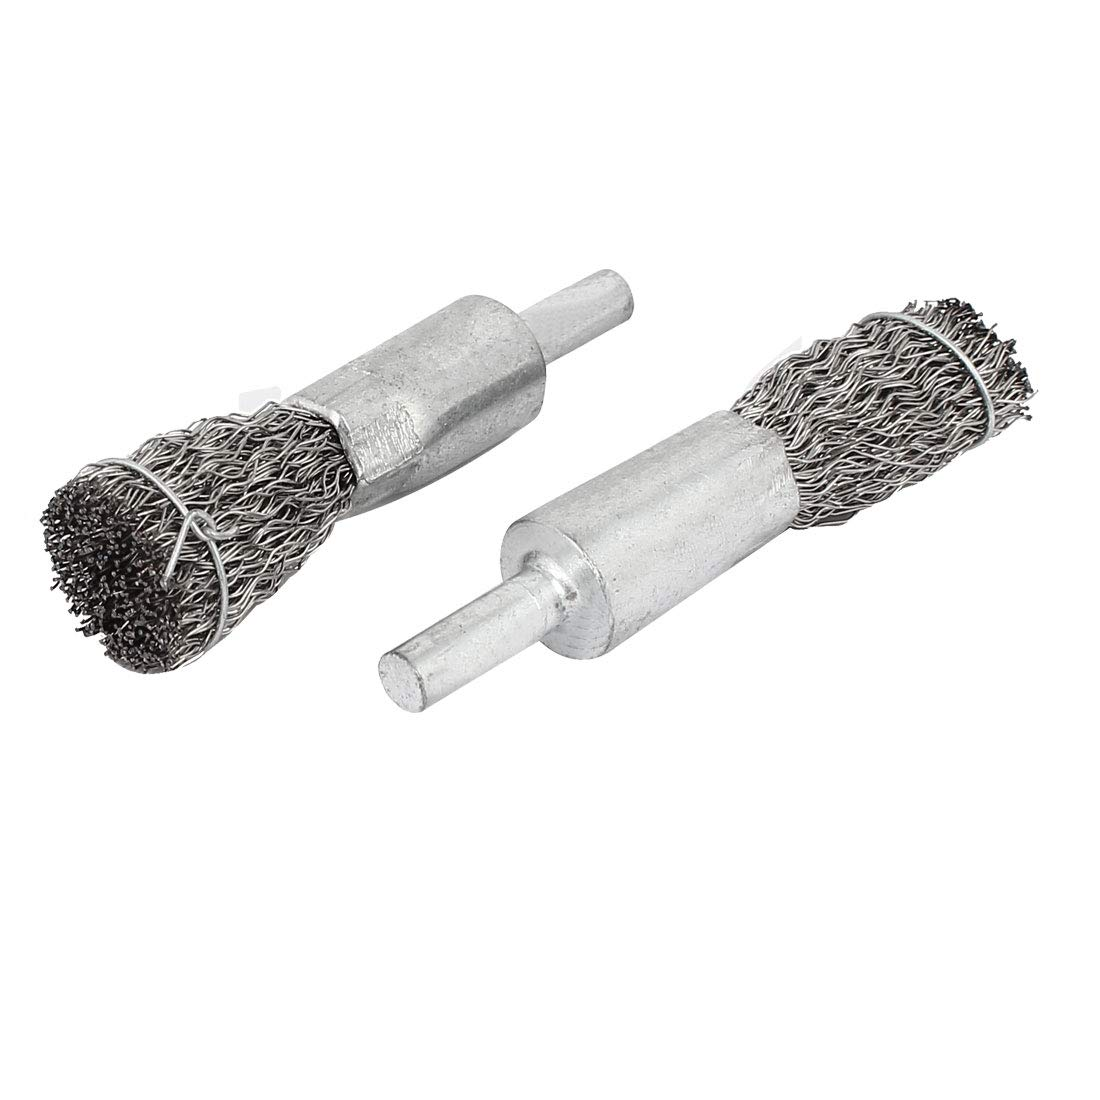 sourcingmap/® 6mmx15mm Stainless Steel Pen Design Crimped Wire End Brushes Polishing Tools 4pcs